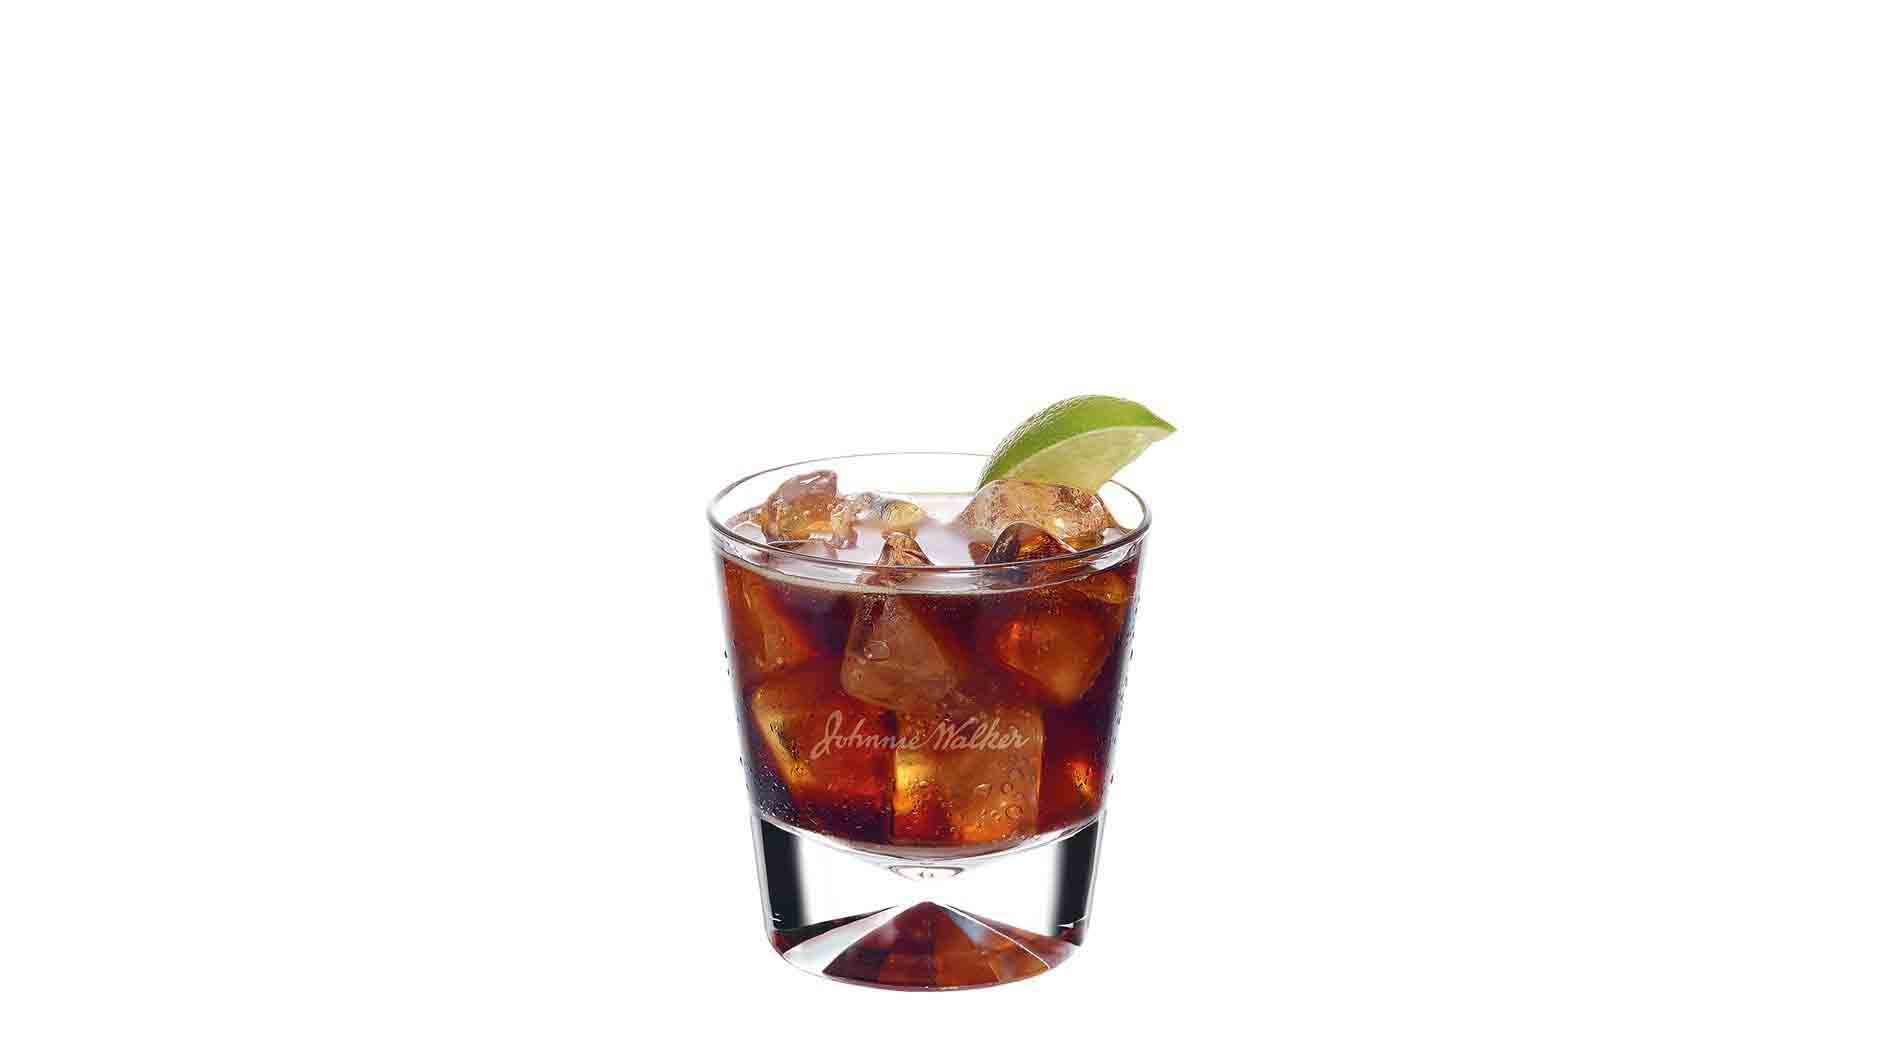 Johnnie Walker Red & Cola cocktail in a tumbler